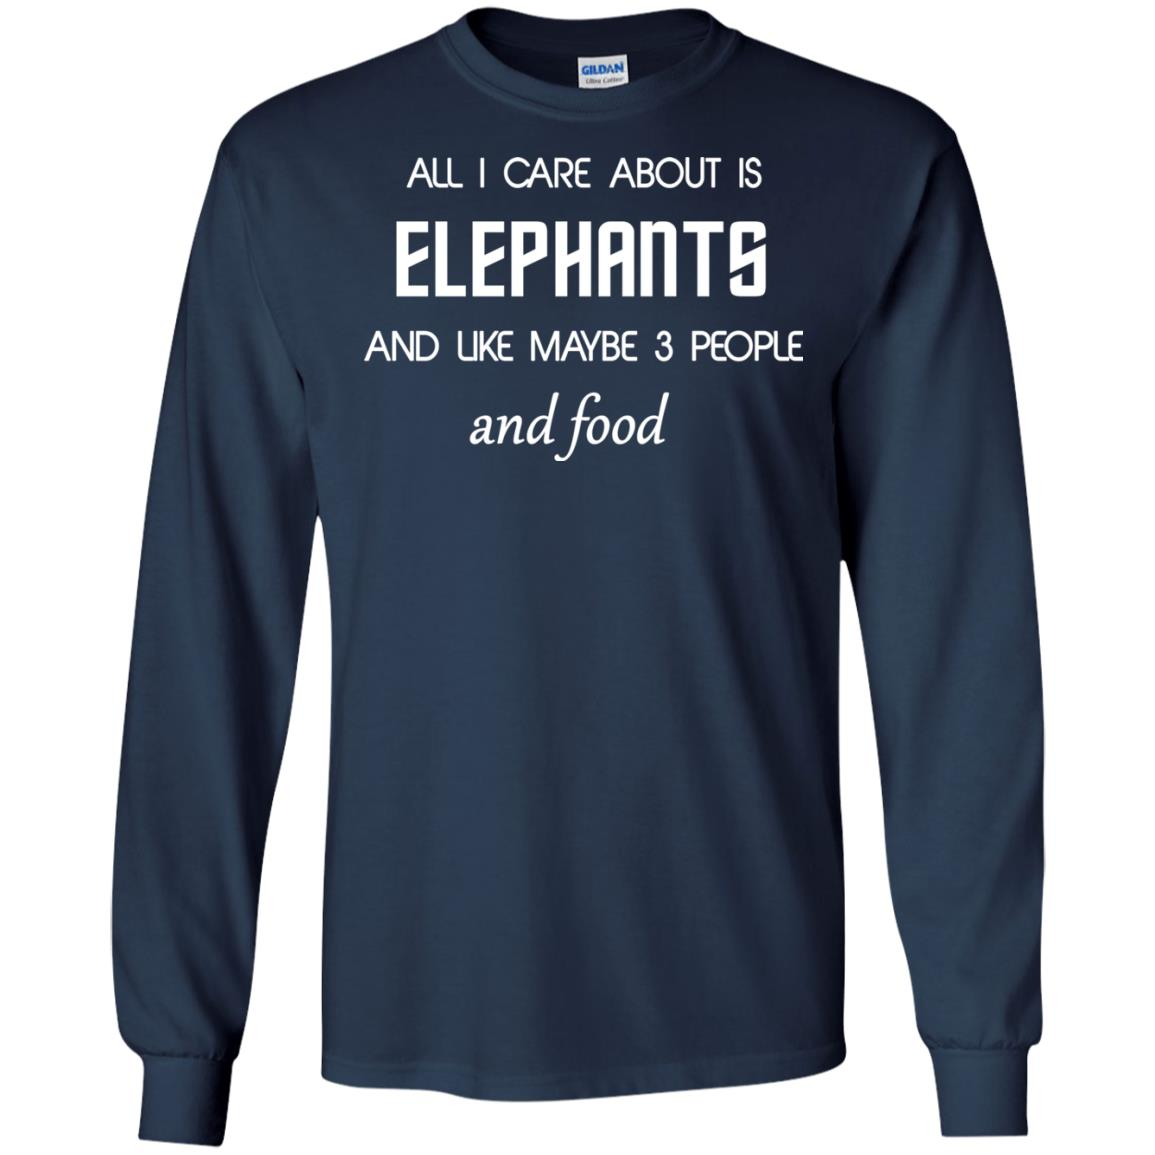 image 4196 - All I care about is elephants shirt, hoodie, sweater